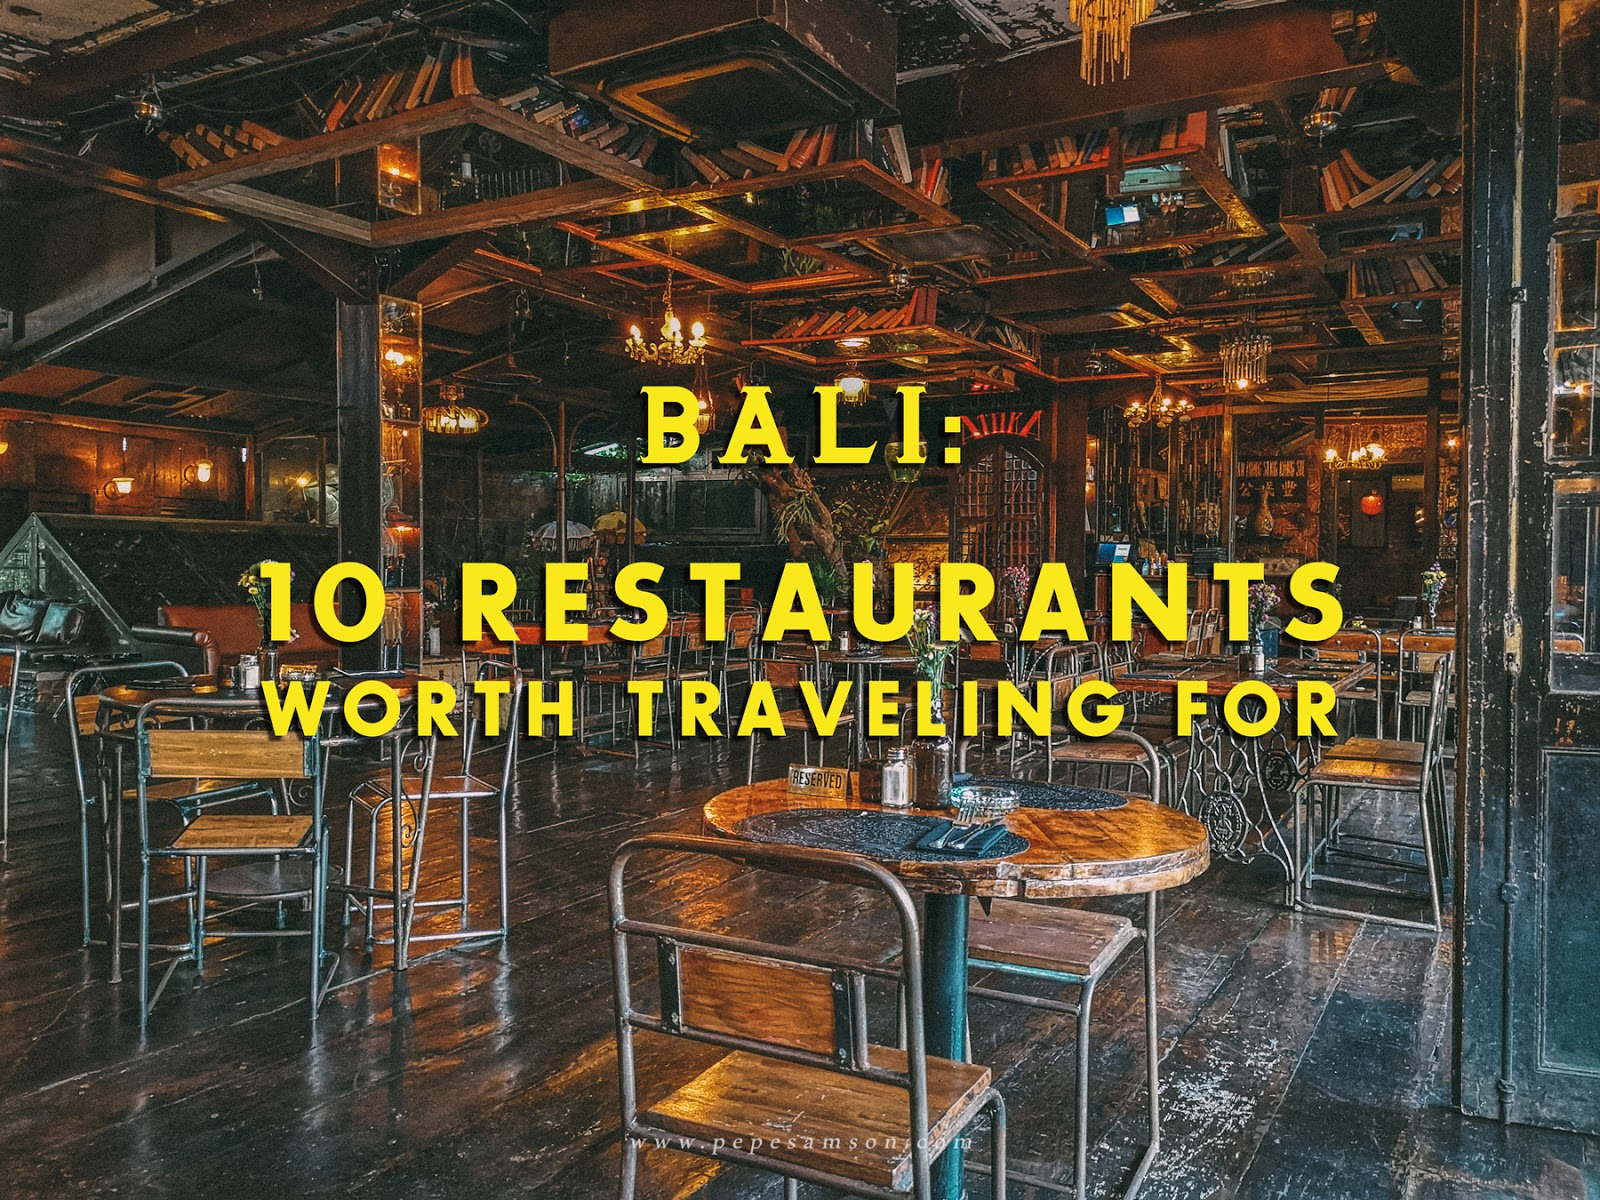 Bali Food Trip: 10 Restaurants Worth Traveling For